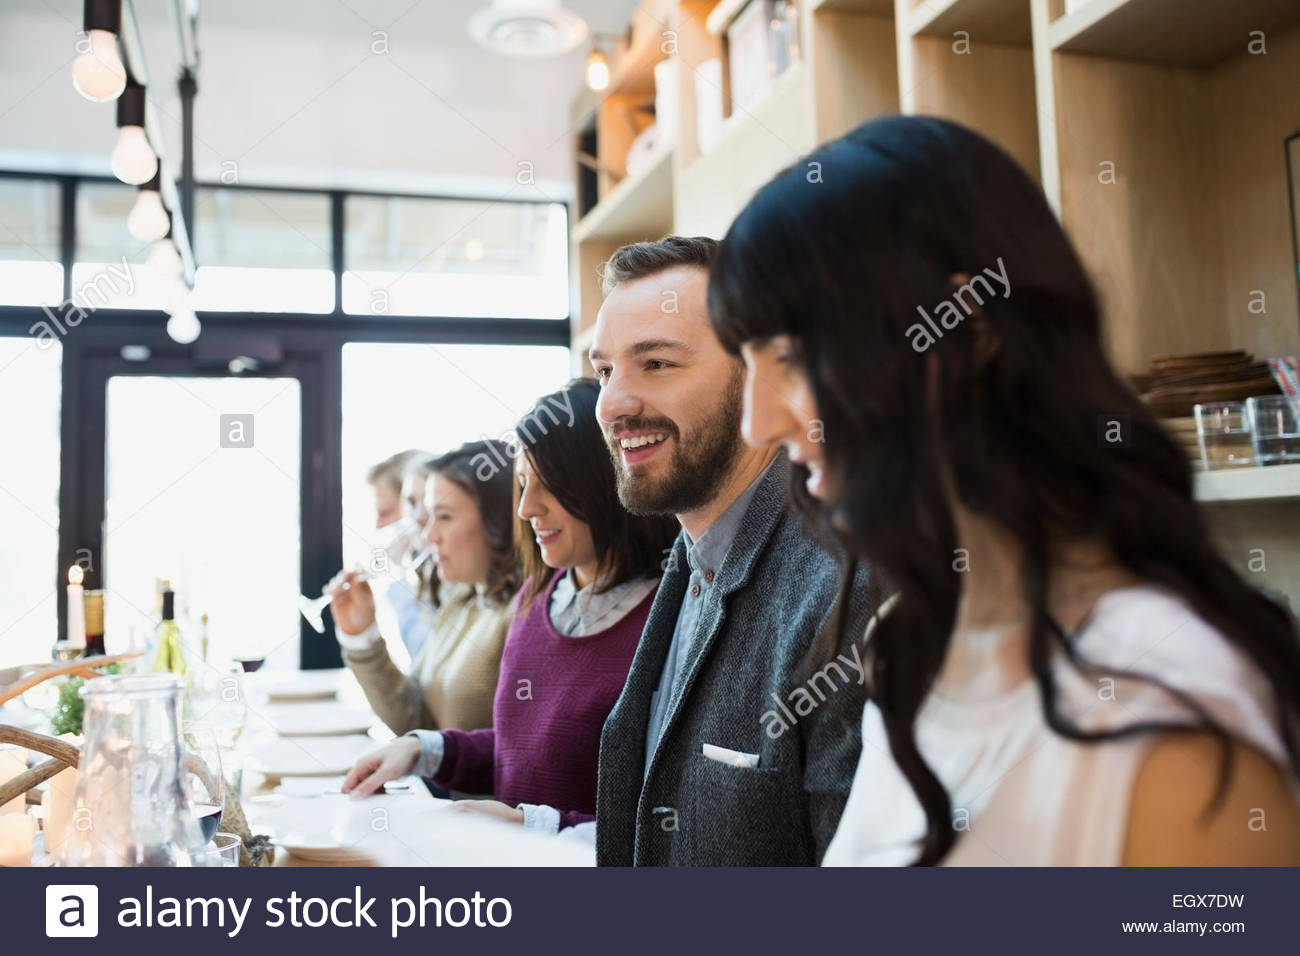 Friends sitting at communal table in restaurant - Stock Image